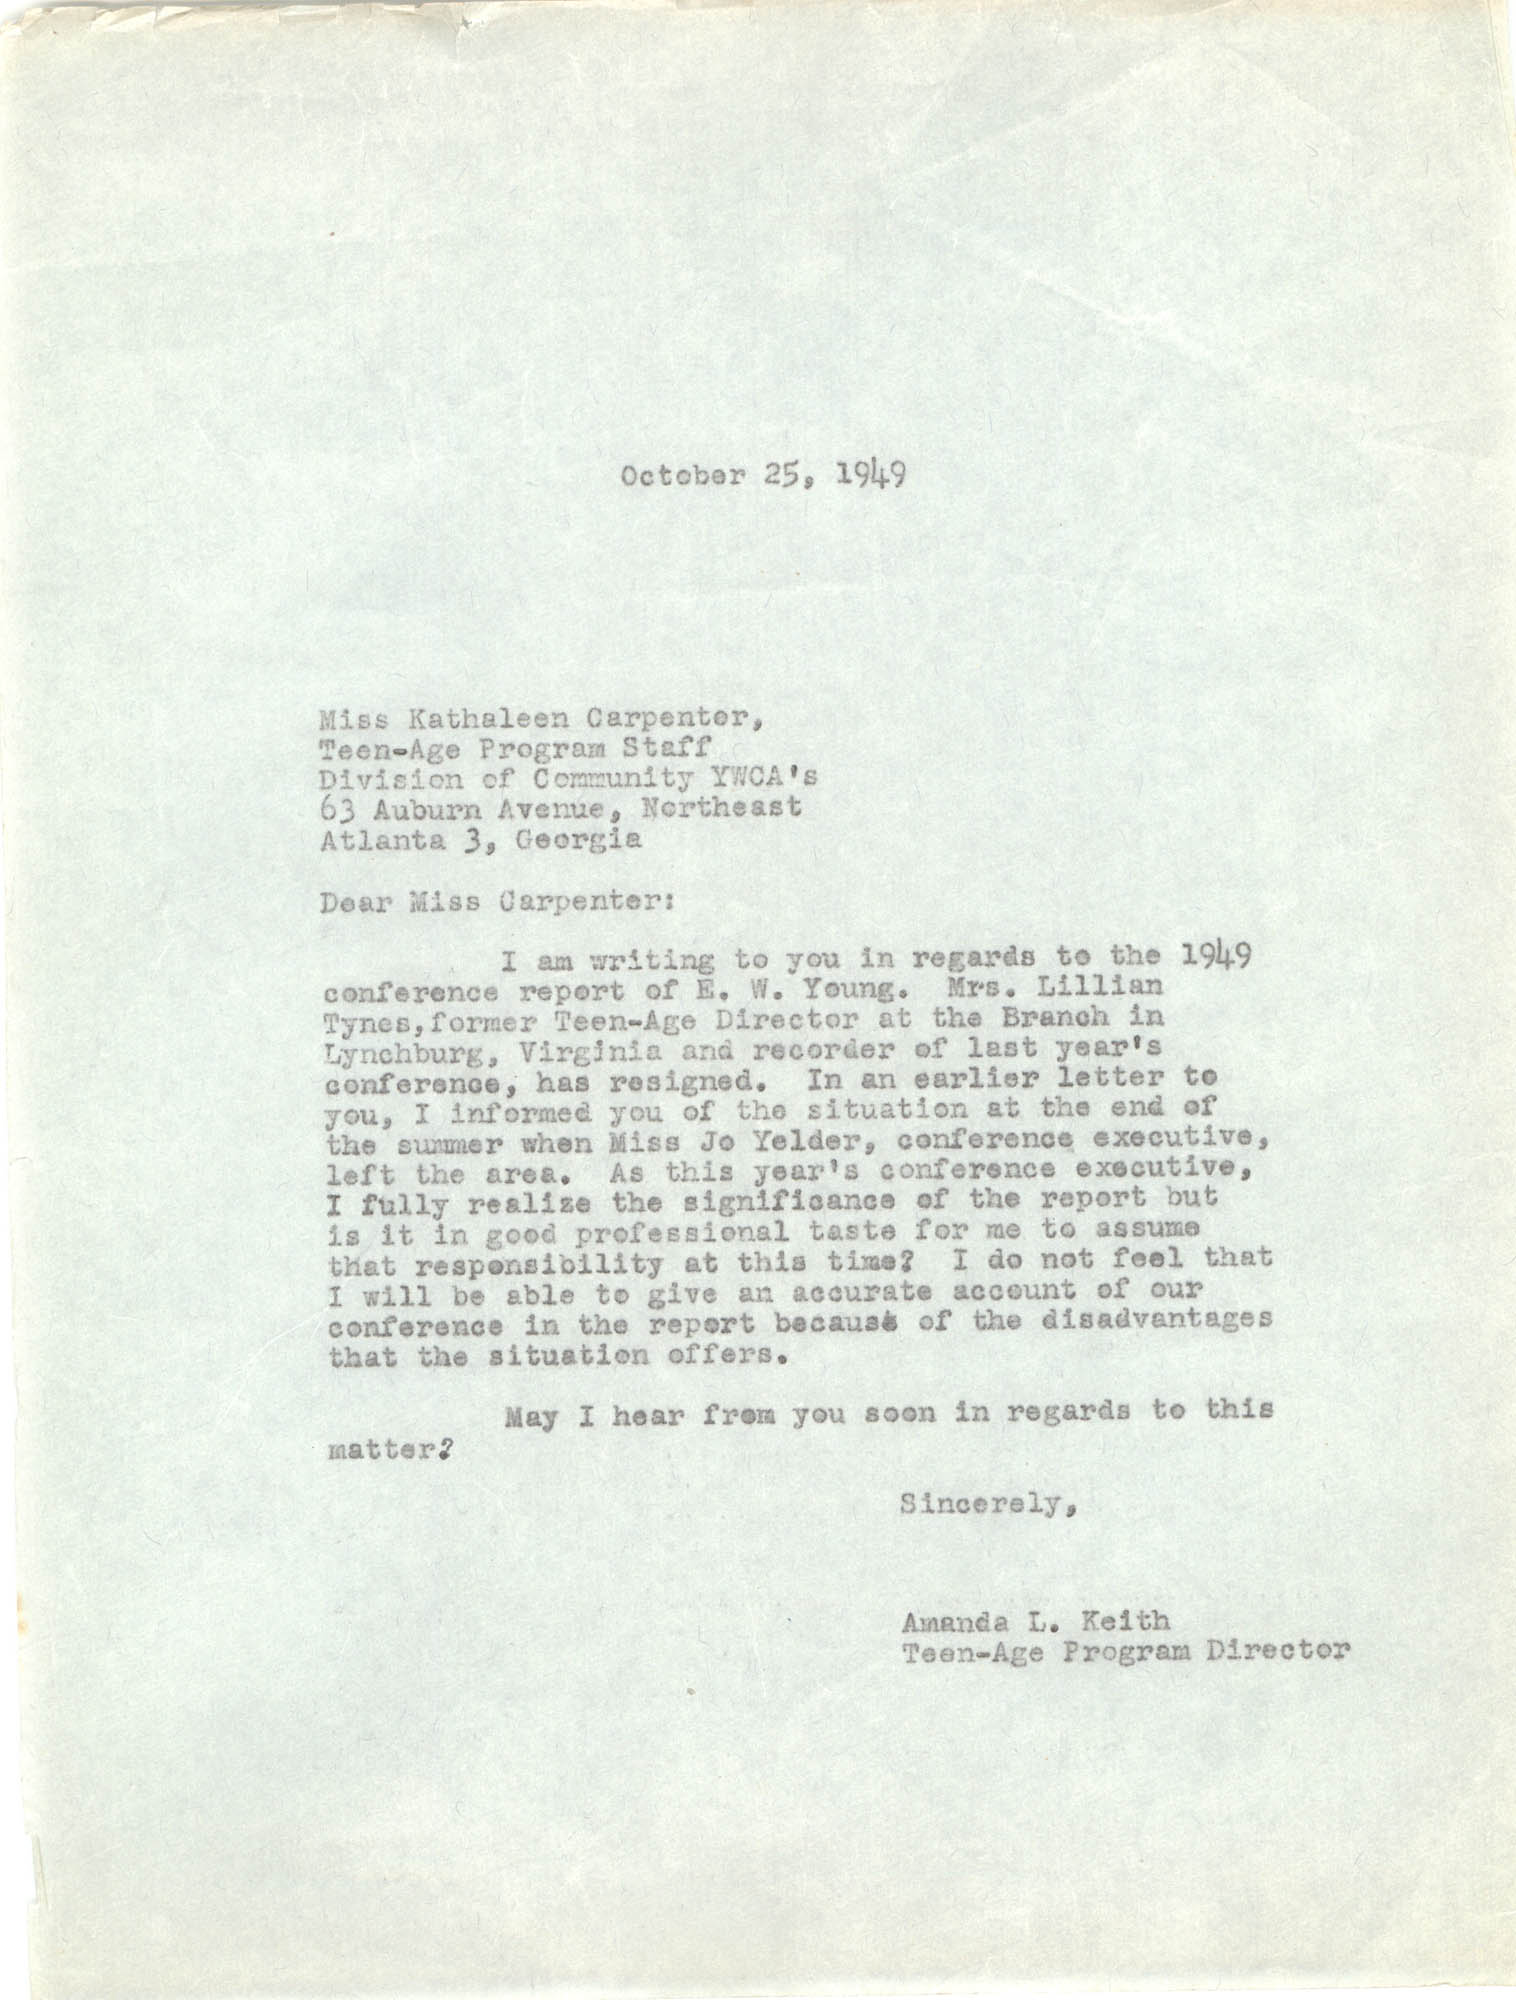 Letter from Amanda Keith to Kathaleen Carpenter, October 25, 1949